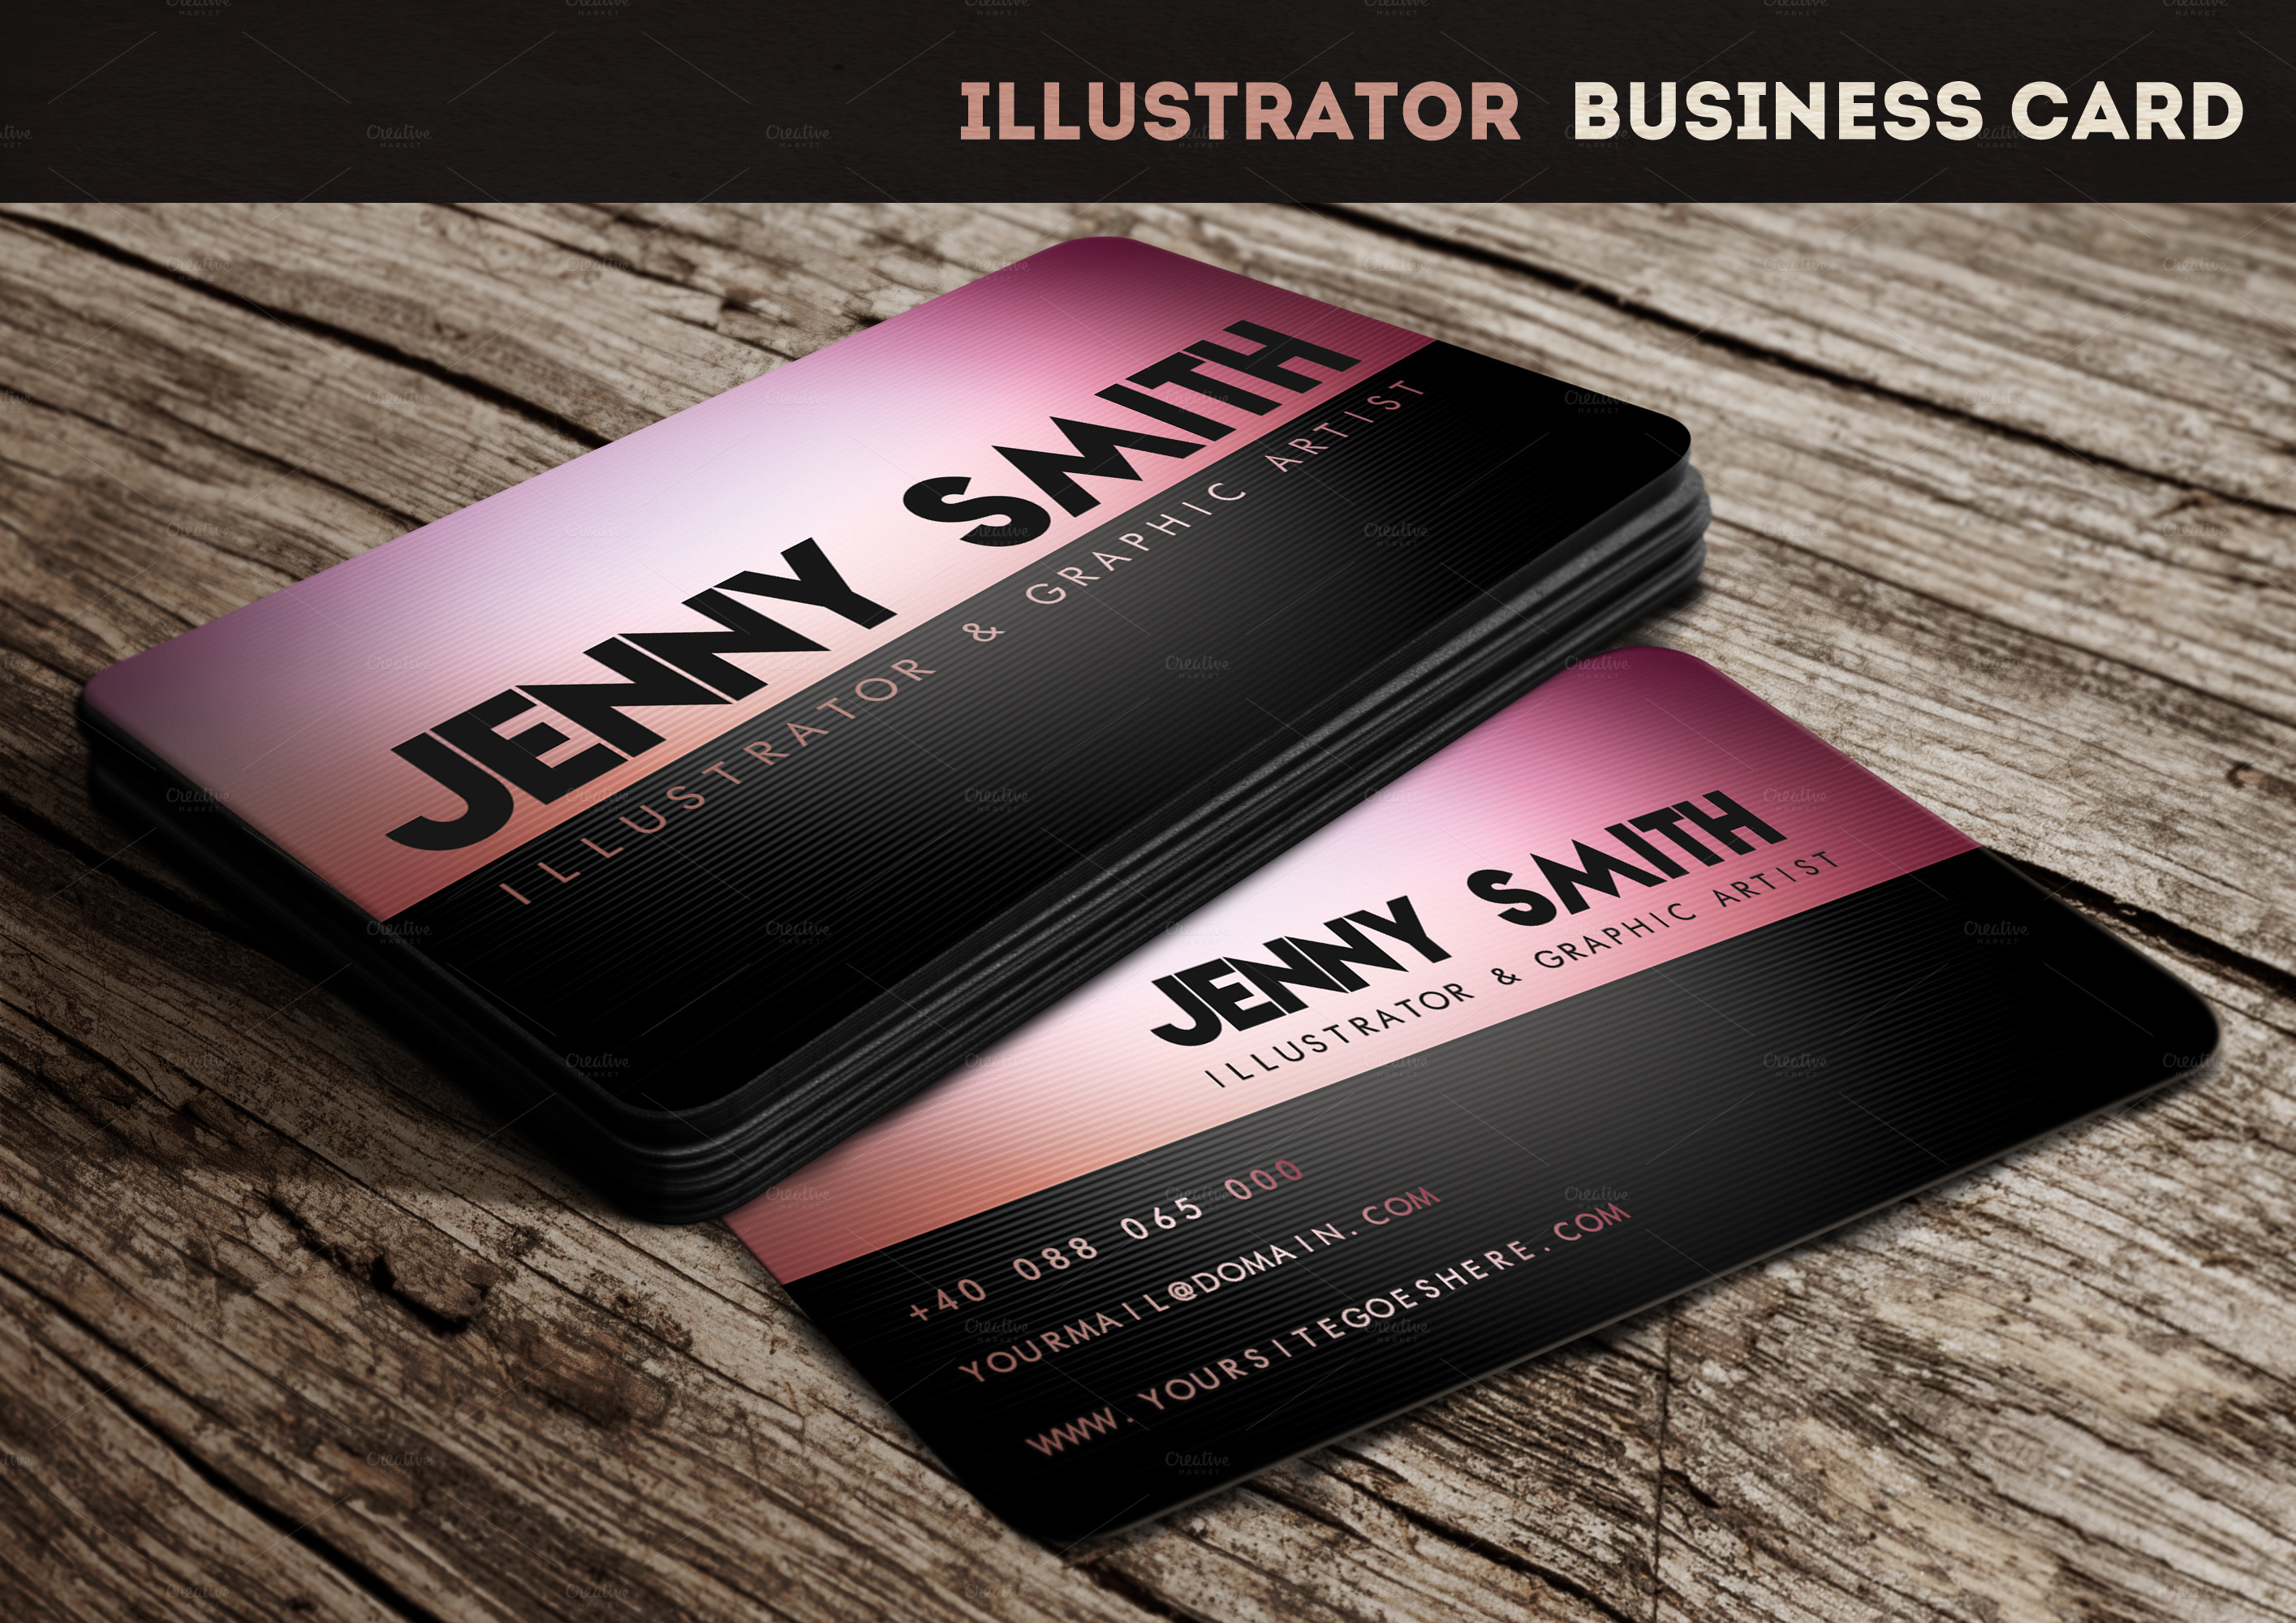 Illustrator Business Card Business Card Templates on